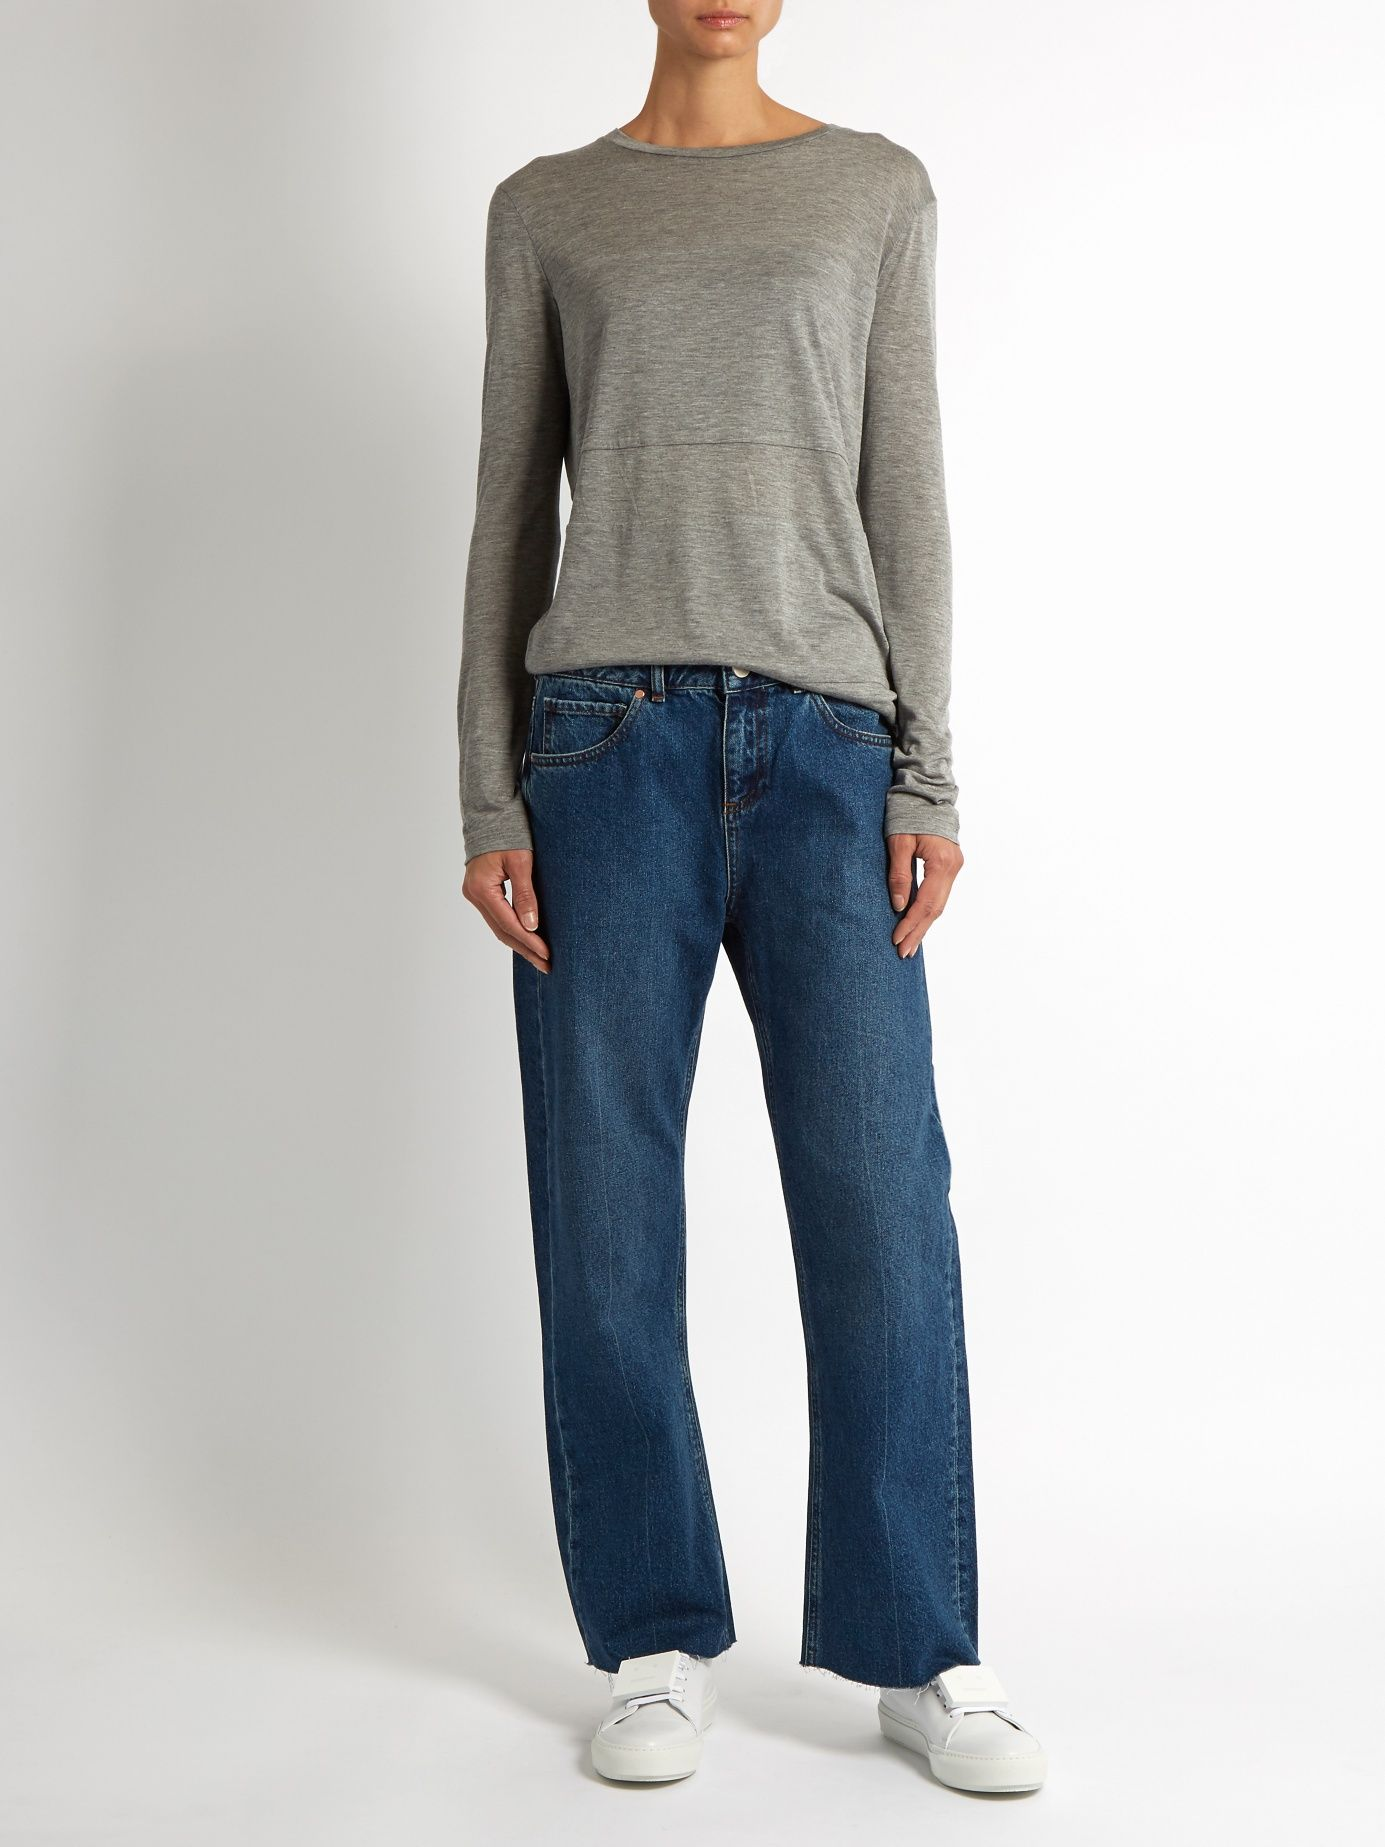 1ae233613 Click here to buy Raey Flood flared jeans at MATCHESFASHION.COM ...